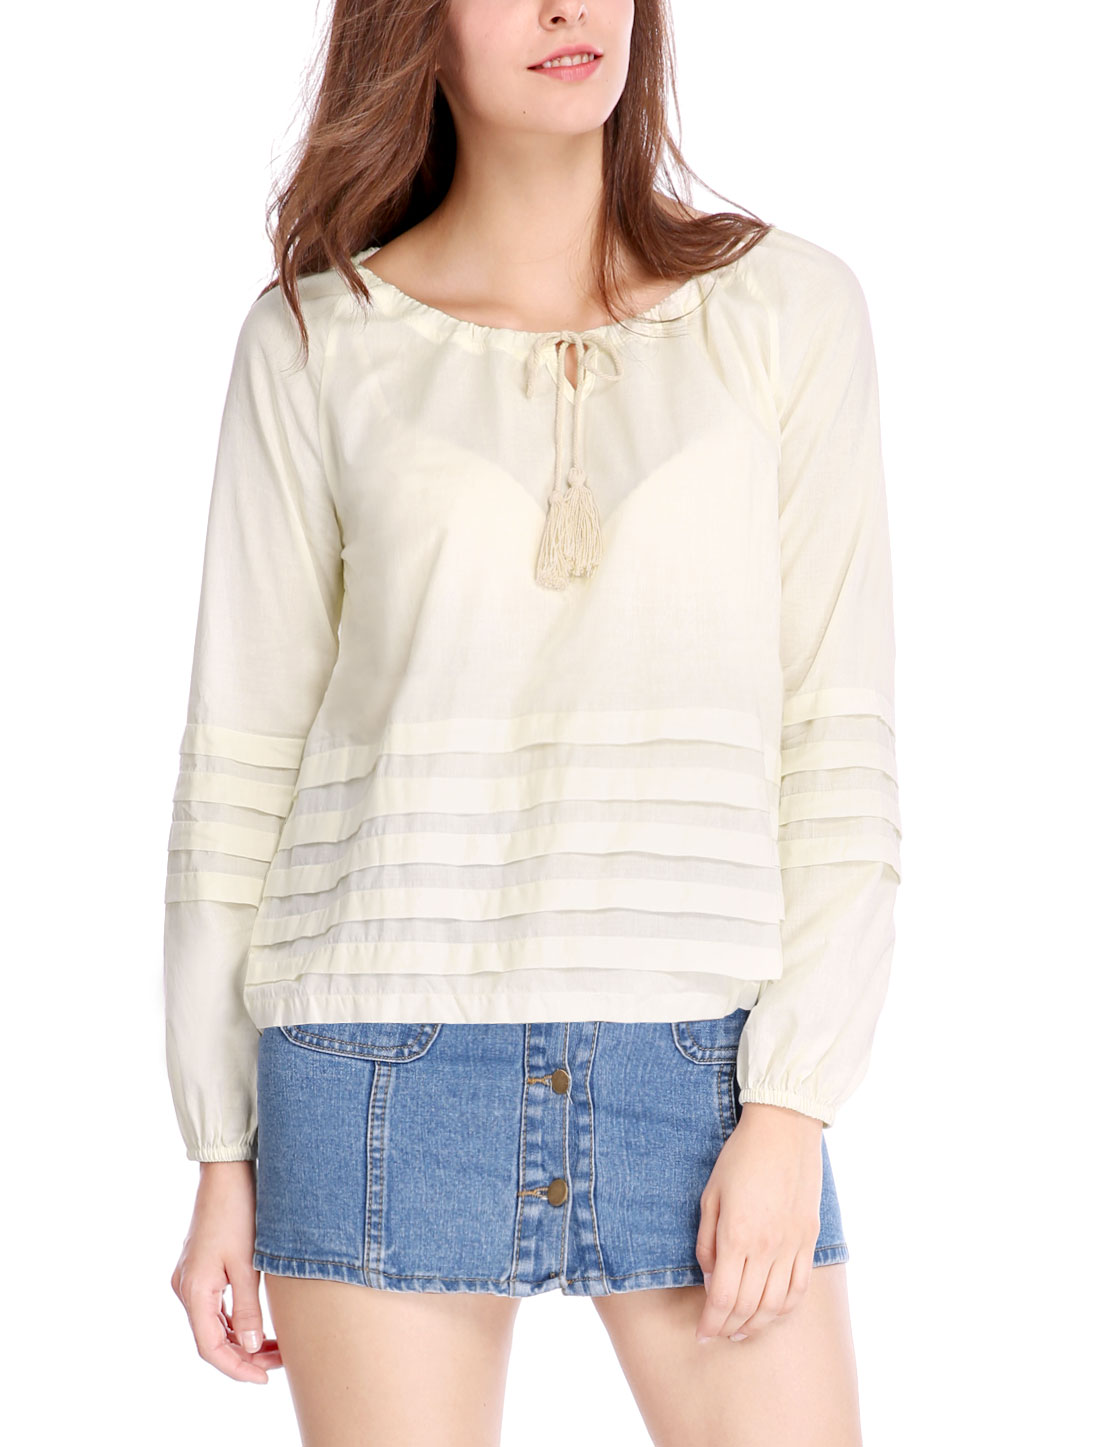 Women Tassel Tie Front Shutter Pleats Long Sleeves Blouse Ivory XL